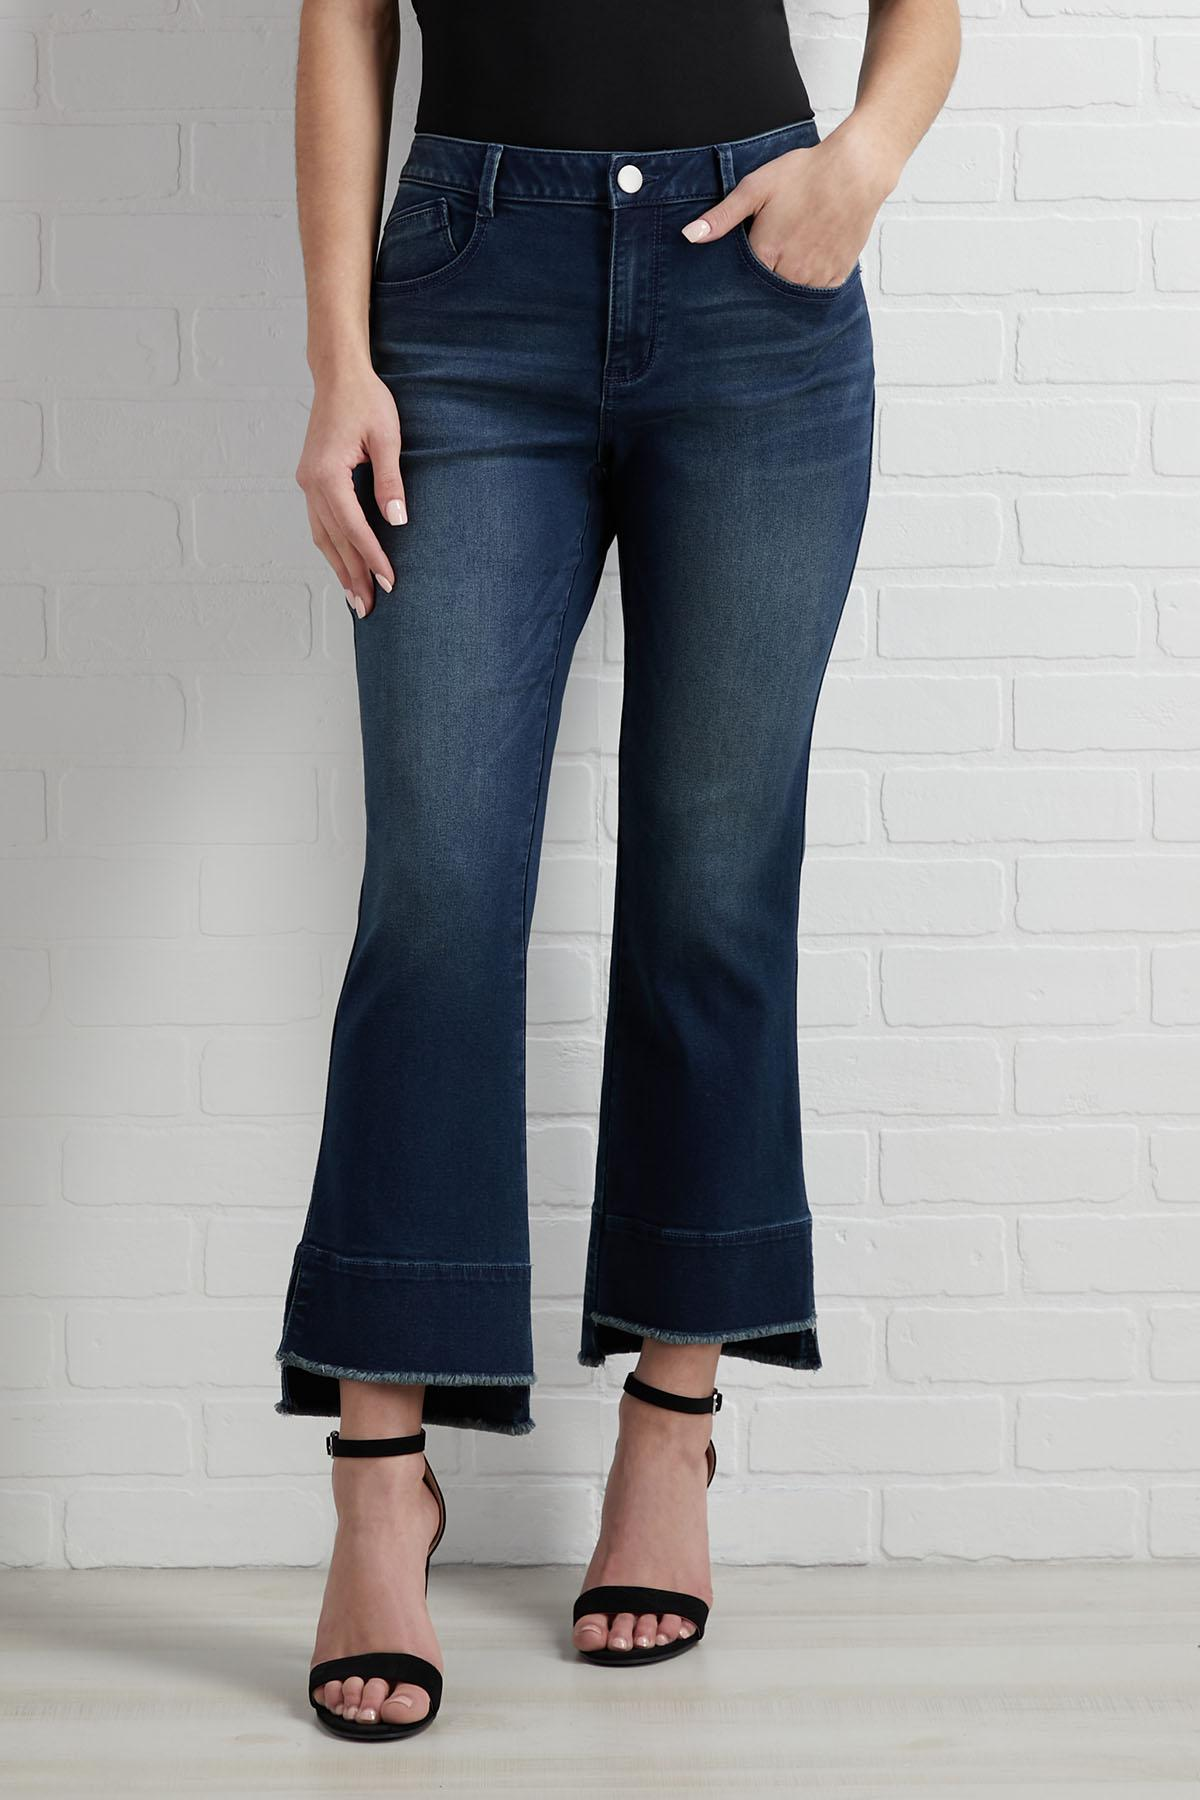 Step In The Right Direction Jeans